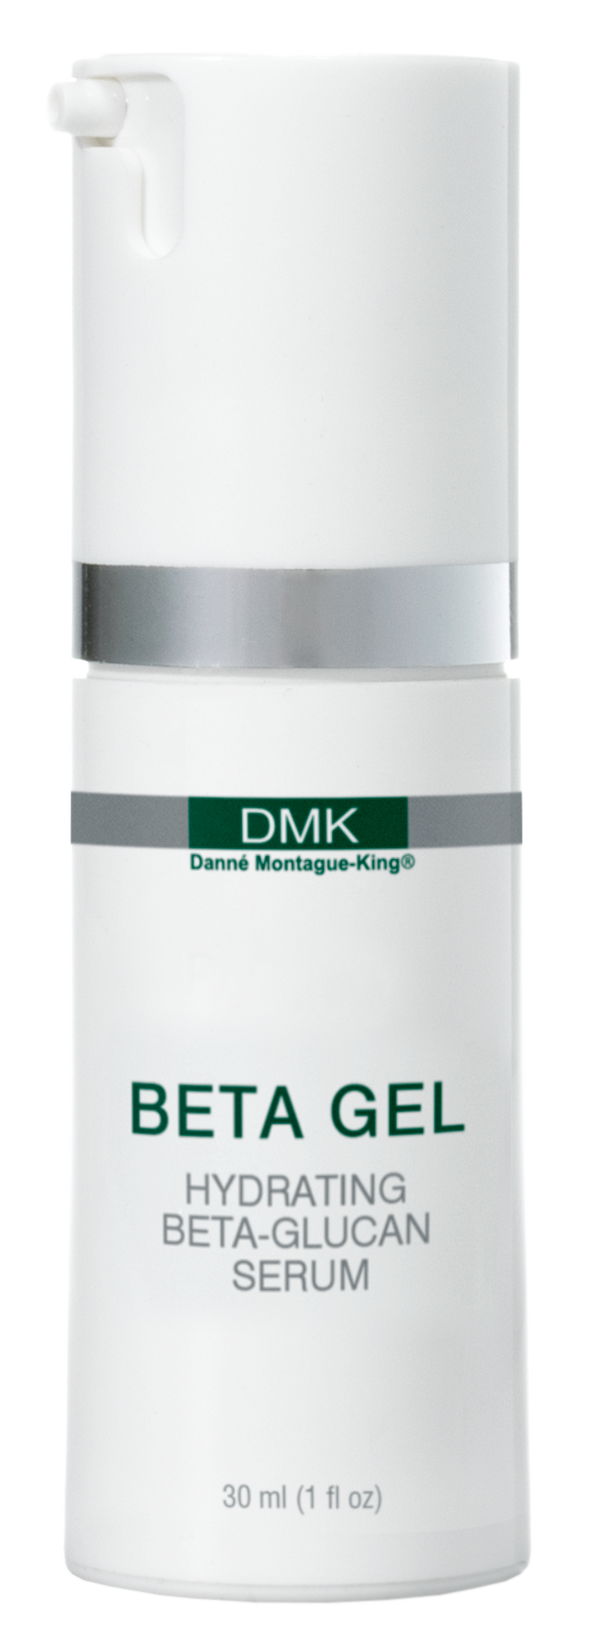 DMK Beta Gel